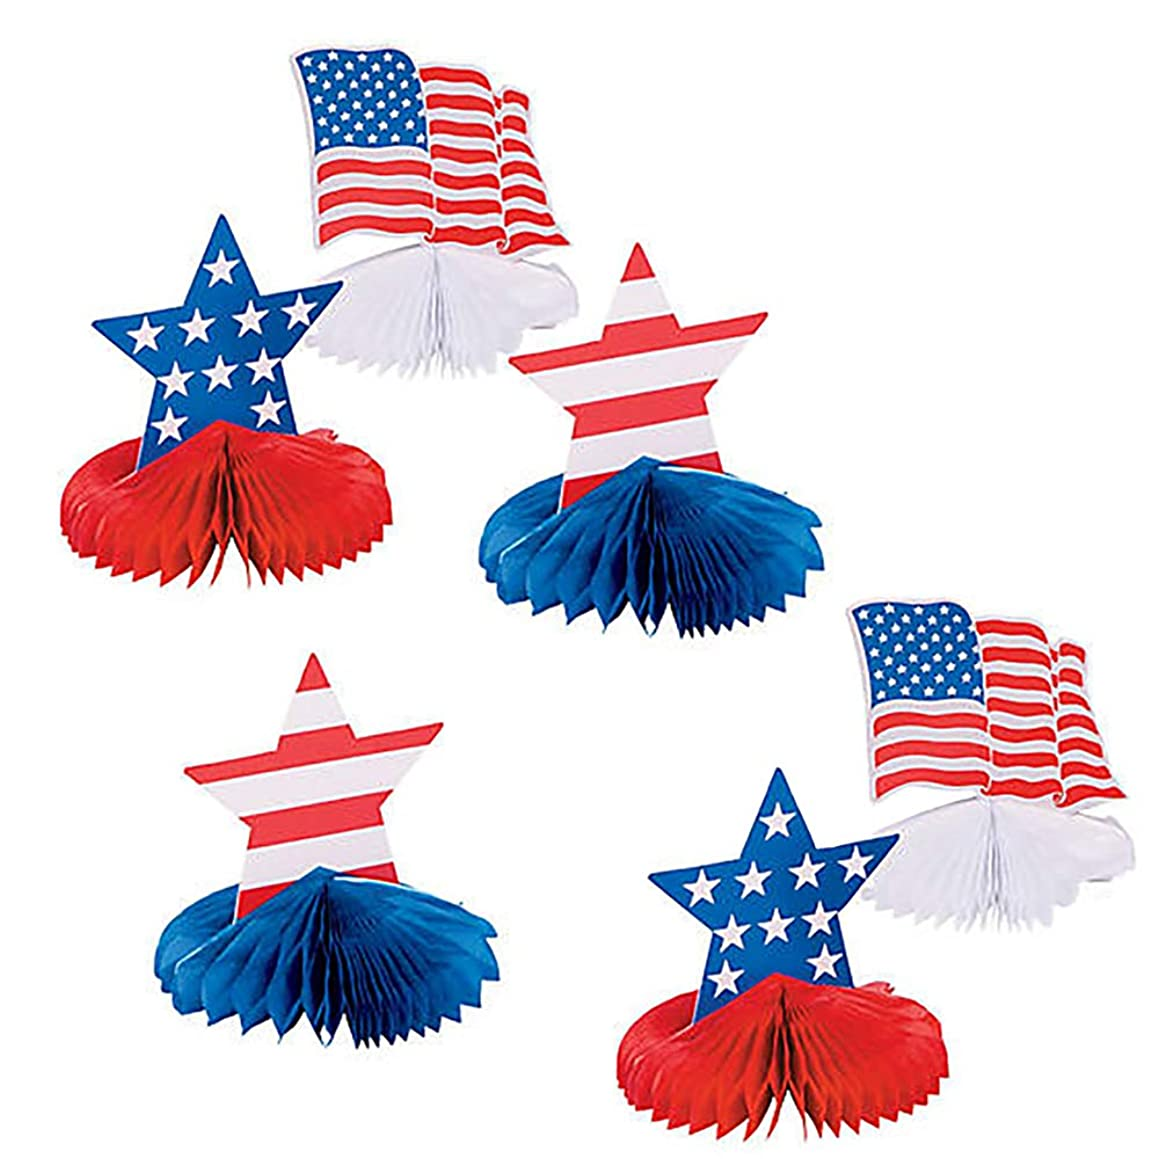 July Fourth American Flag Honeycomb Centerpieces Patriotic (6 Piece Set)